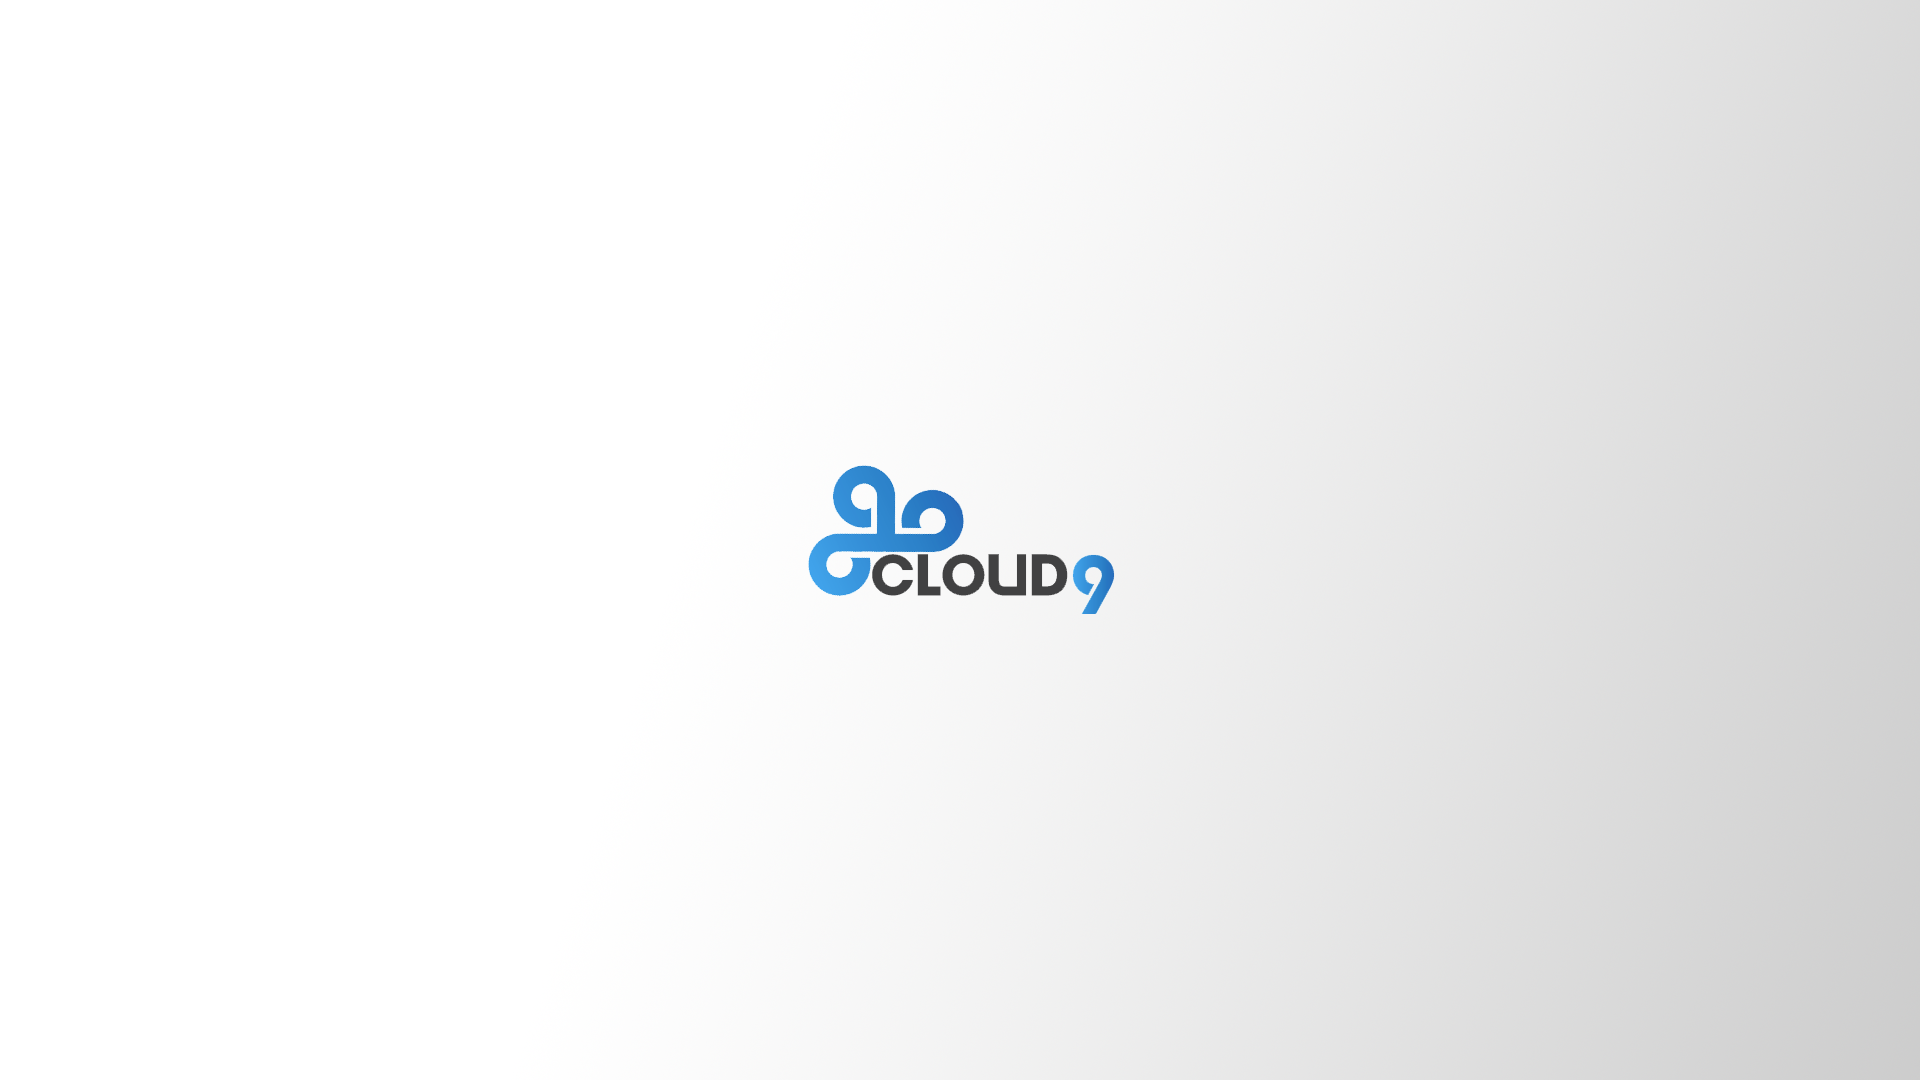 Cloud 9 cs go wallpaper wallpapersafari for Cloud 9 architecture